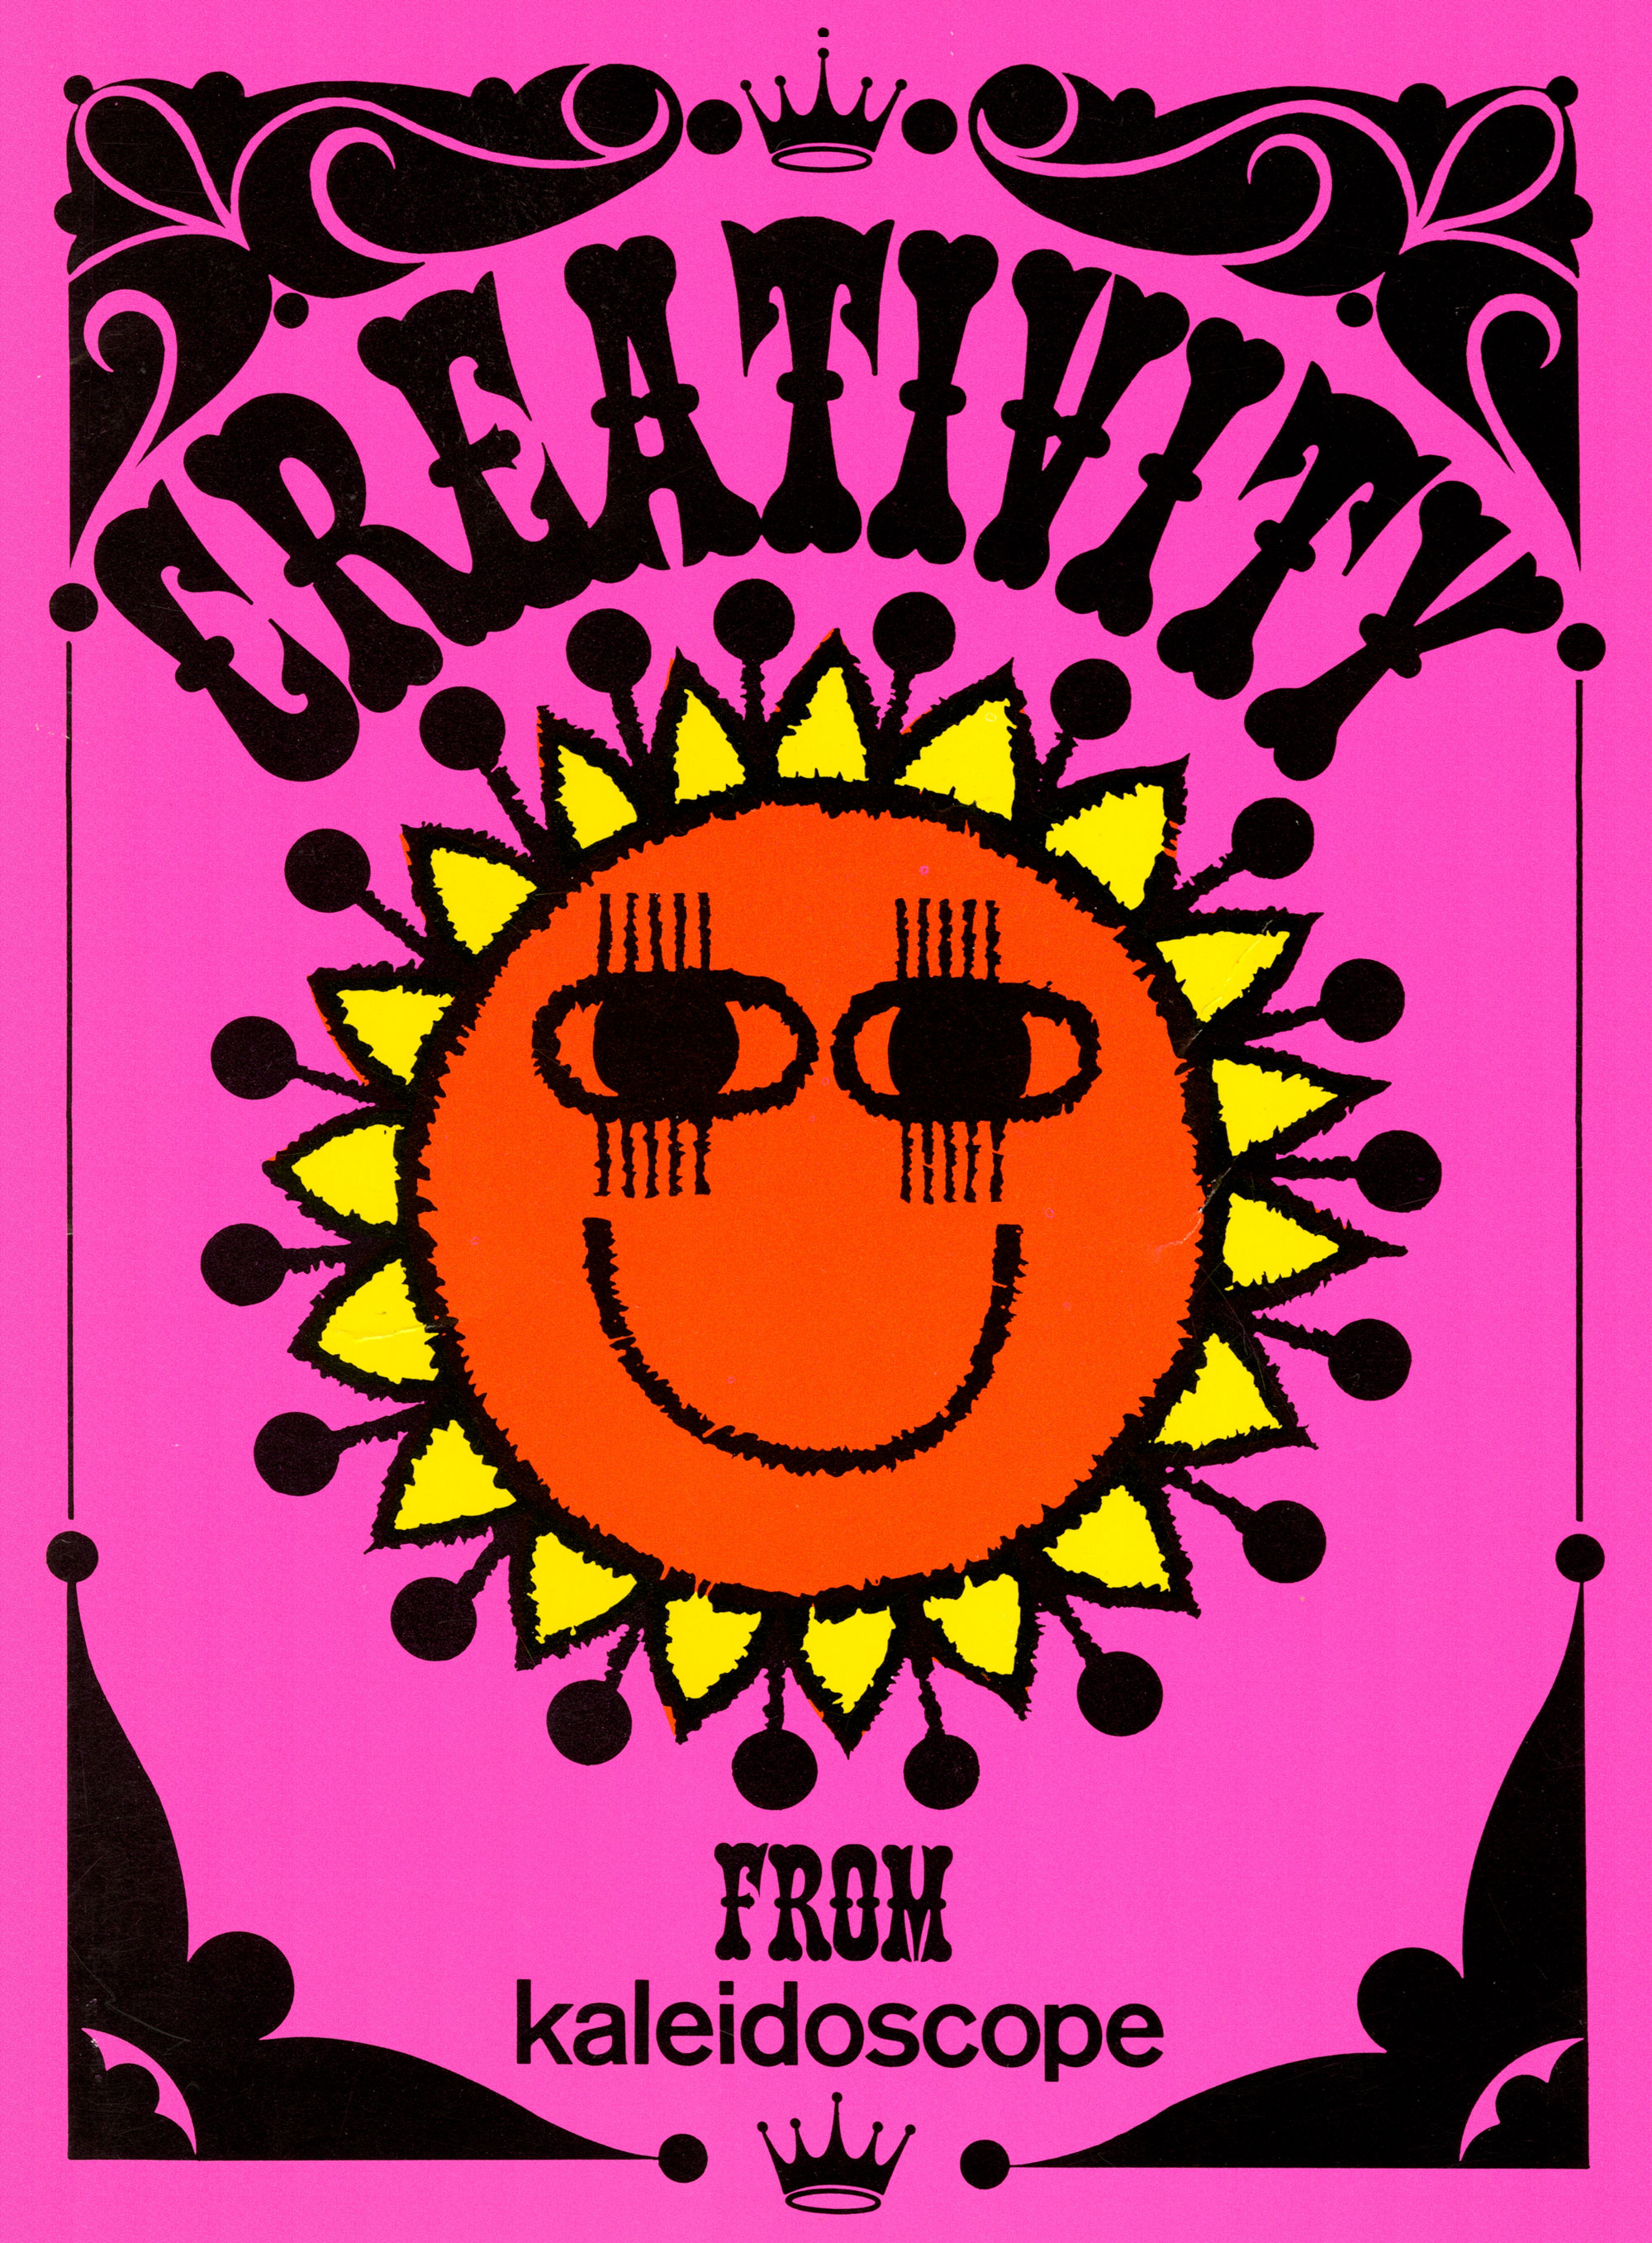 hallmark-creativity-cover.jpg